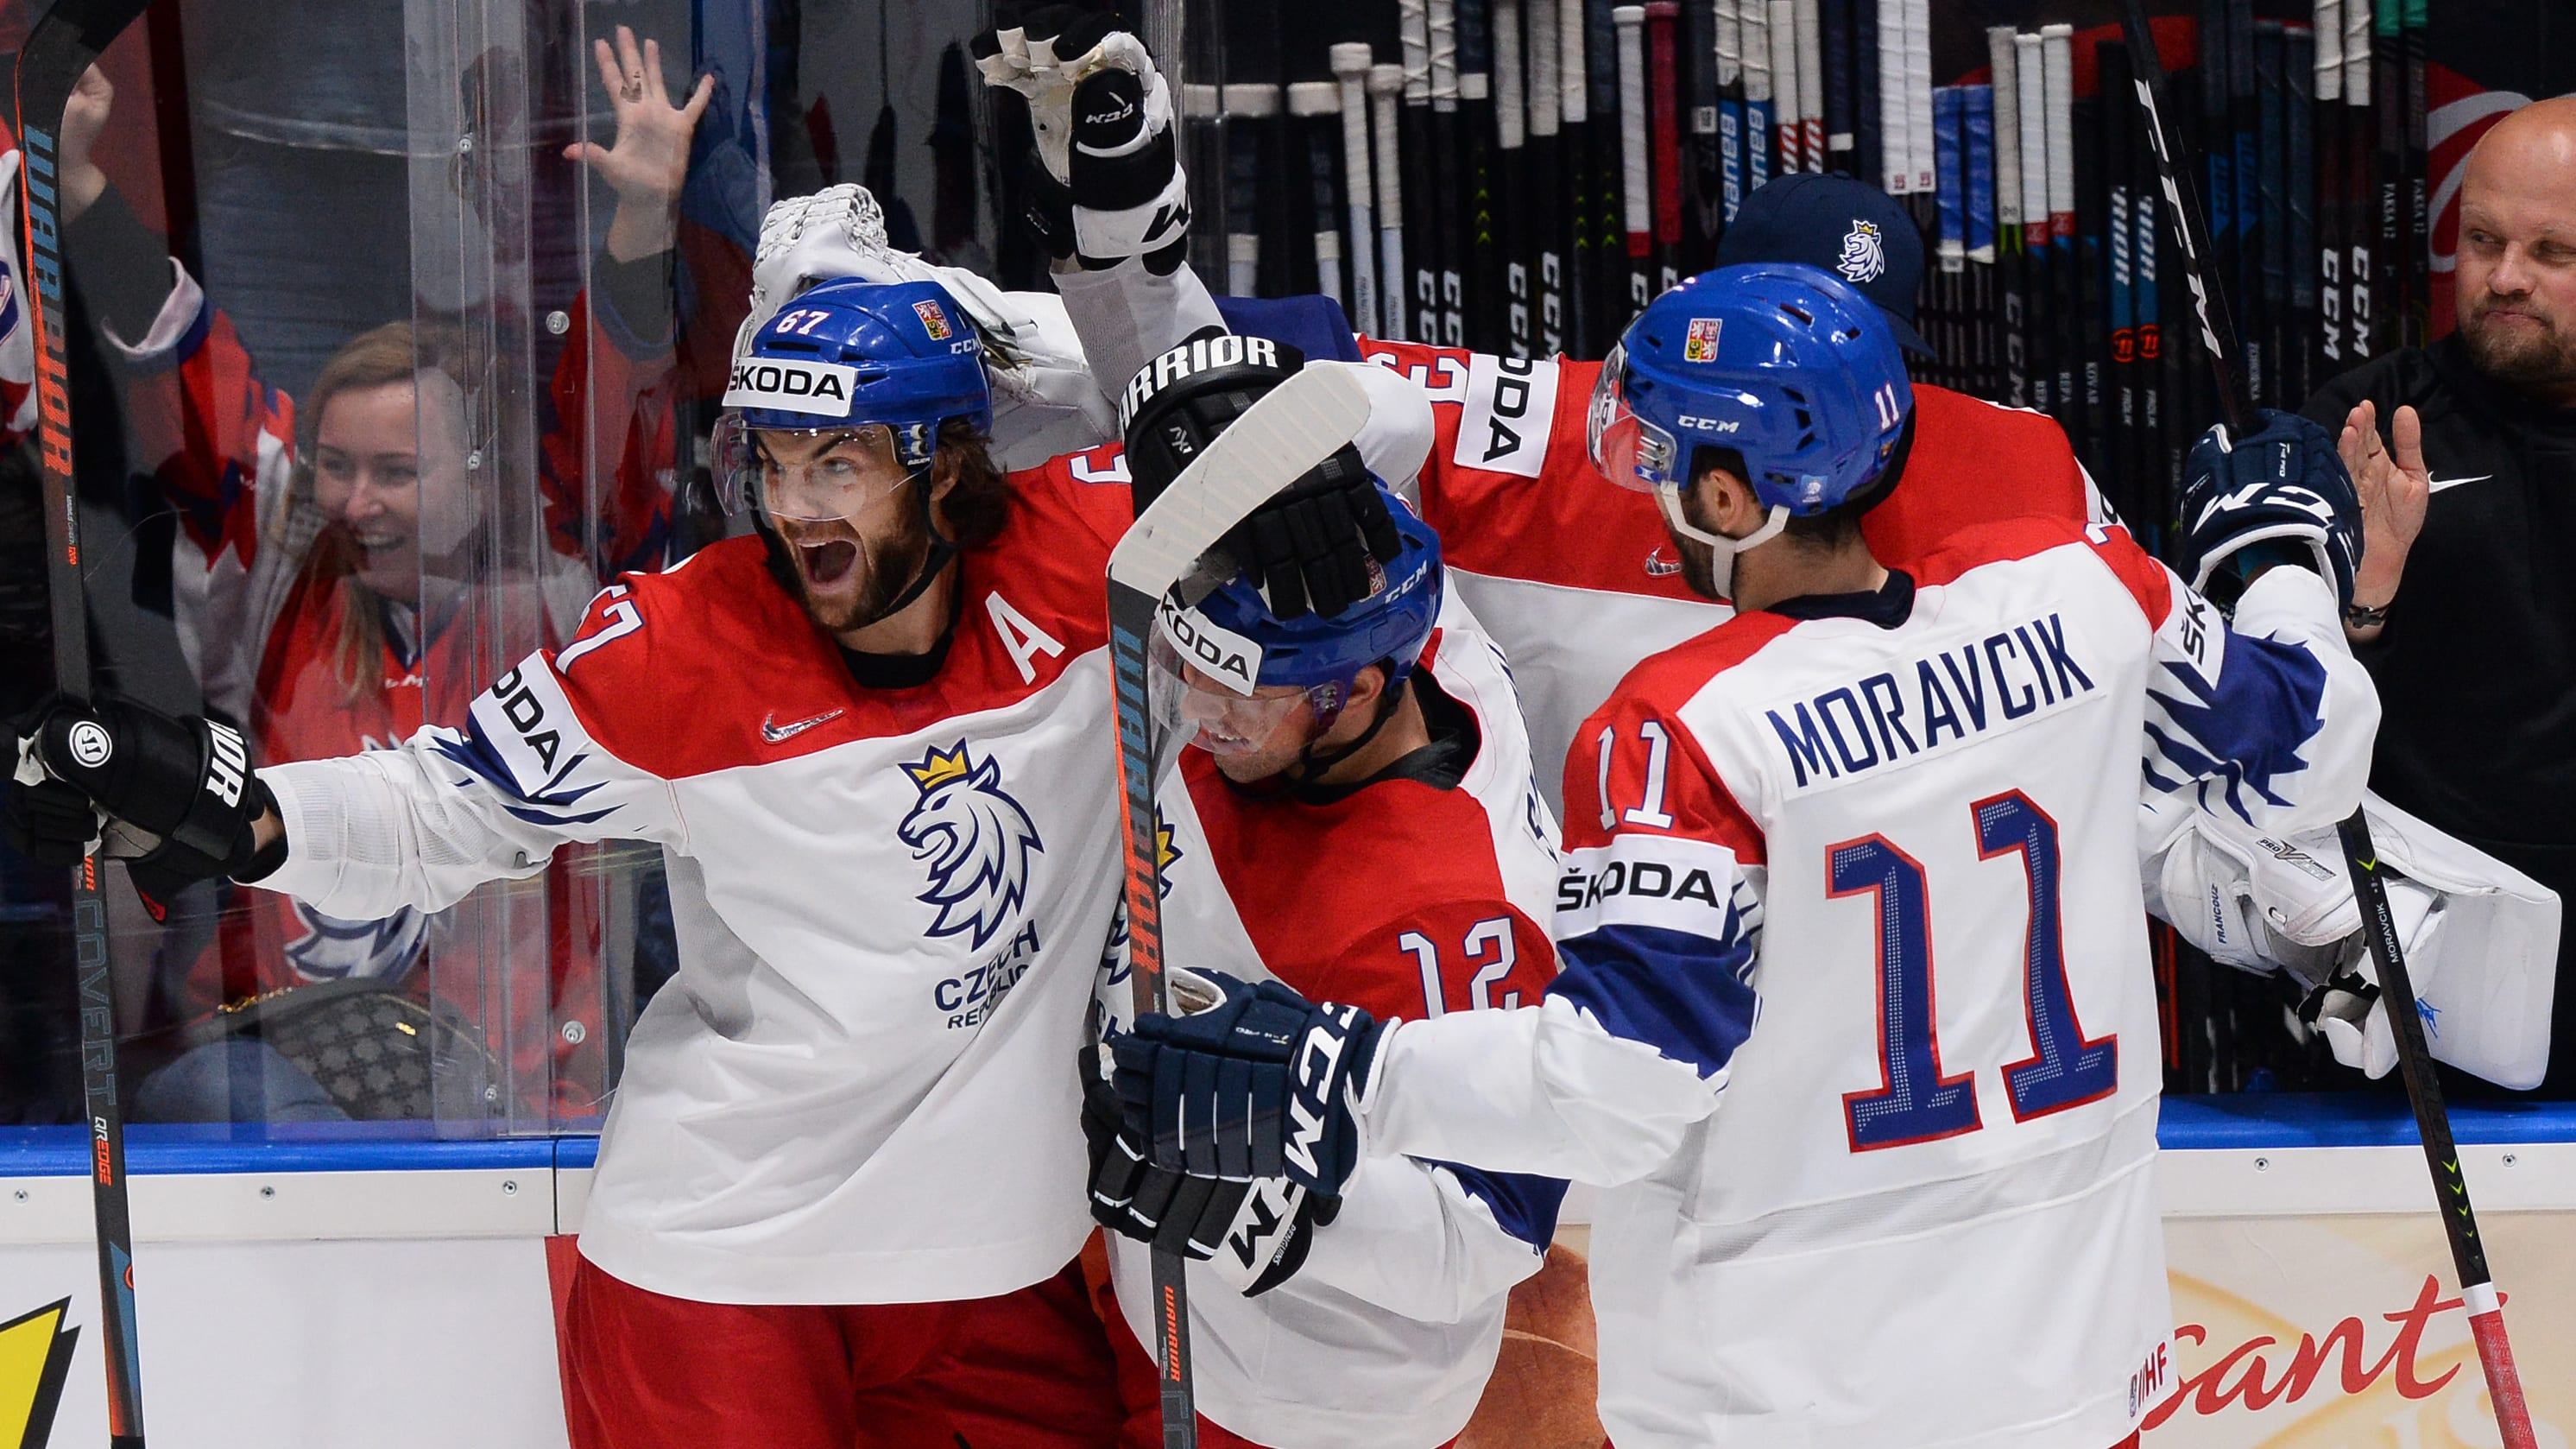 Czech players celebrate a scoring during the IIHF Men's Ice Hockey World Championships Group B match between the Czech Republic and Switzerland on May 21, 2019 in Bratislava. (Photo by VLADIMIR SIMICEK / AFP)        (Photo credit should read VLADIMIR SIMICEK/AFP/Getty Images)